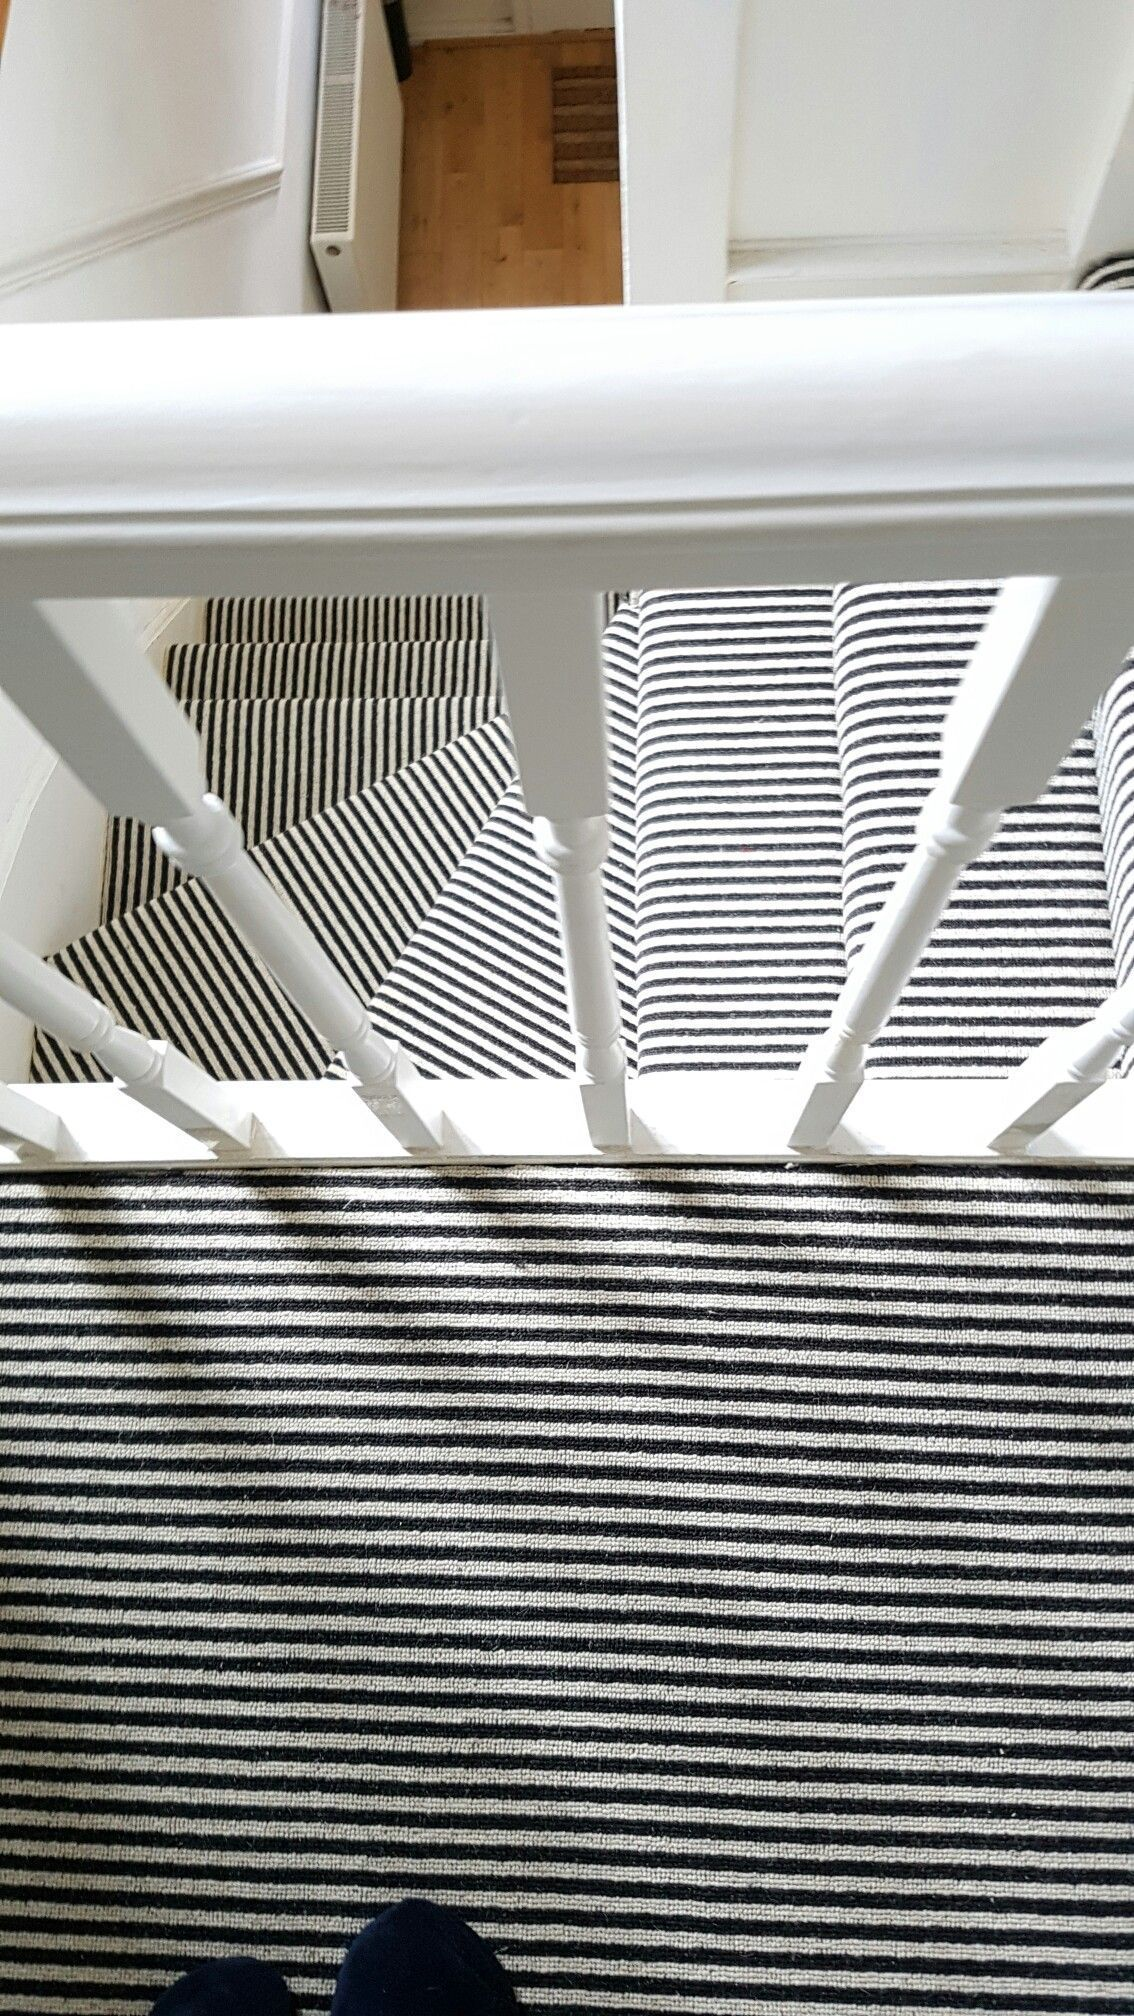 Woodland Nursery Animals Baby Animals Set 6 Bunny Bear Deer Etsy In 2021 Carpet Stairs Black And White Carpet Striped Carpets Black and white striped carpet